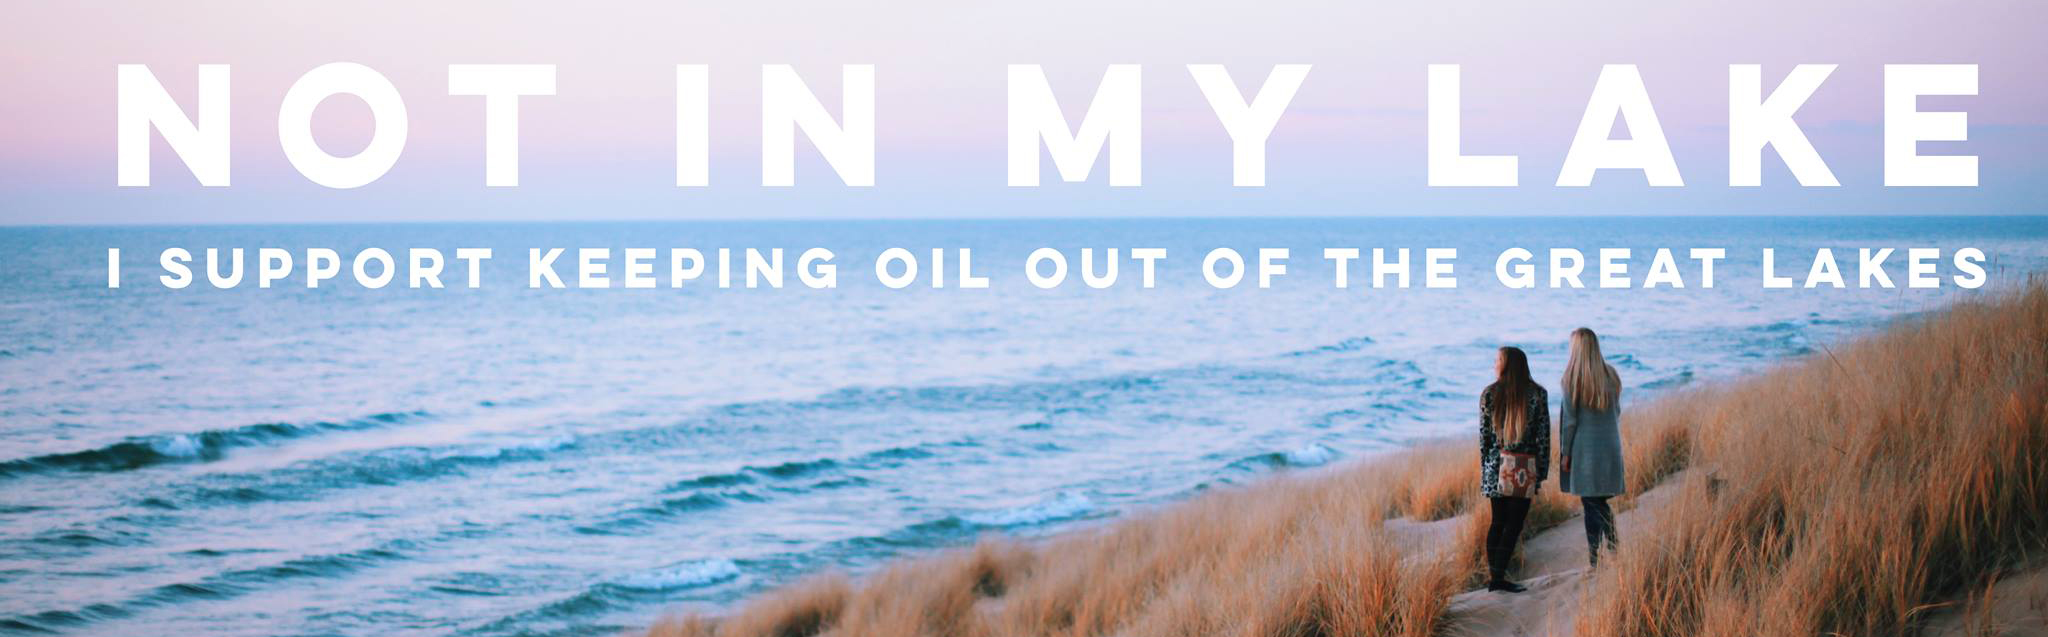 I support keeping oil out of the Great Lakes